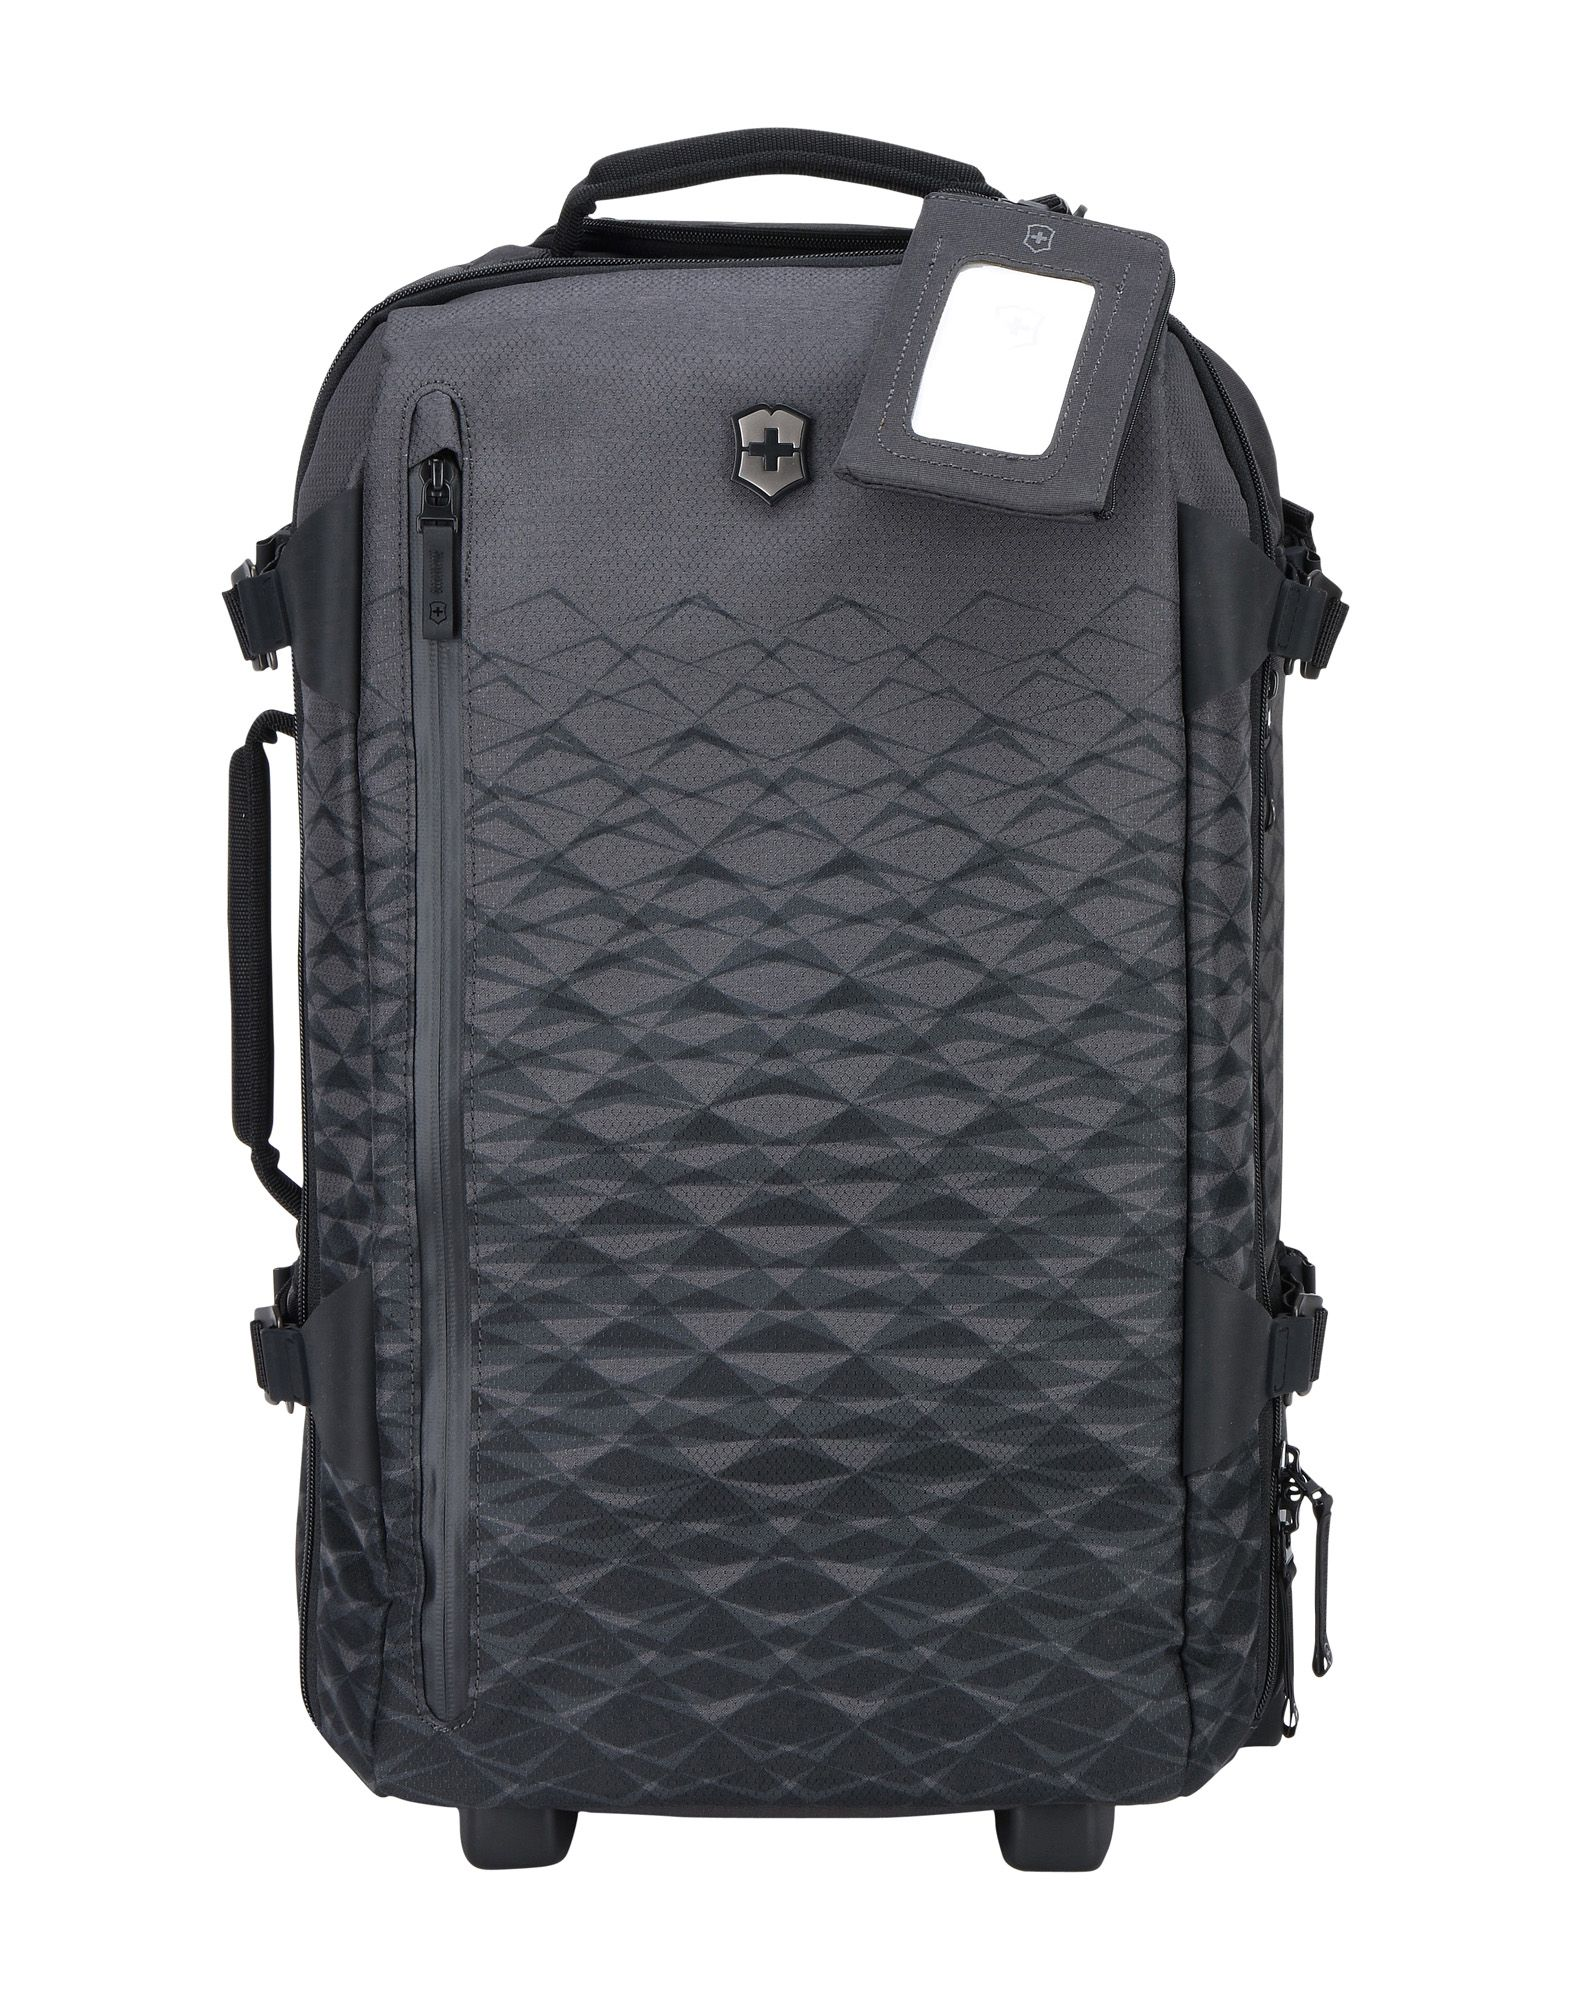 Trolley E Valigie Victorinox Vx Touring 2-Wheel Global Carry-On - Uomo - Acquista online su